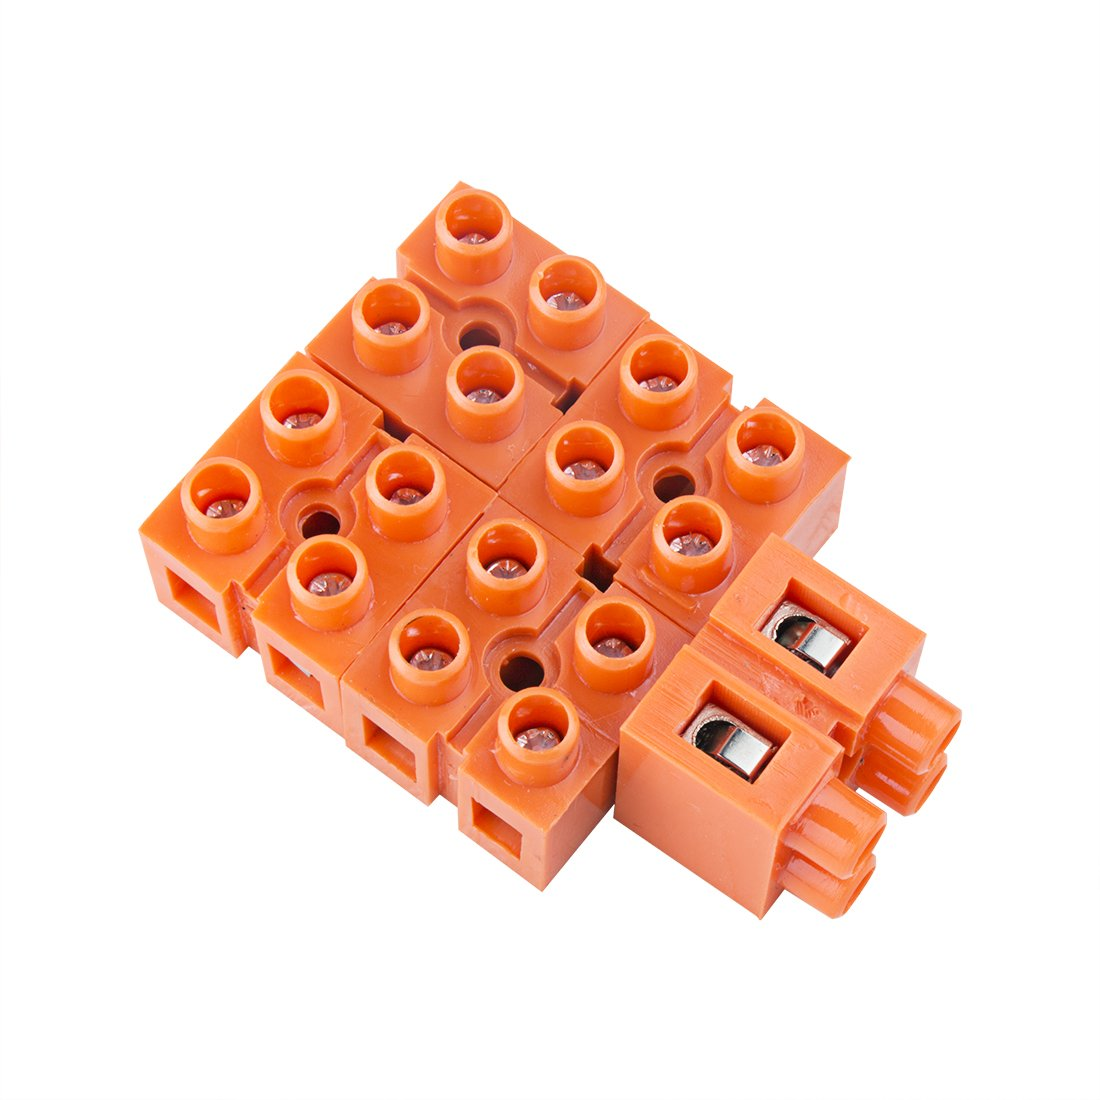 uxcell 5pcs 600V 36A Dual Row 2 Positions Screw Terminal Electric Barrier Strip Block